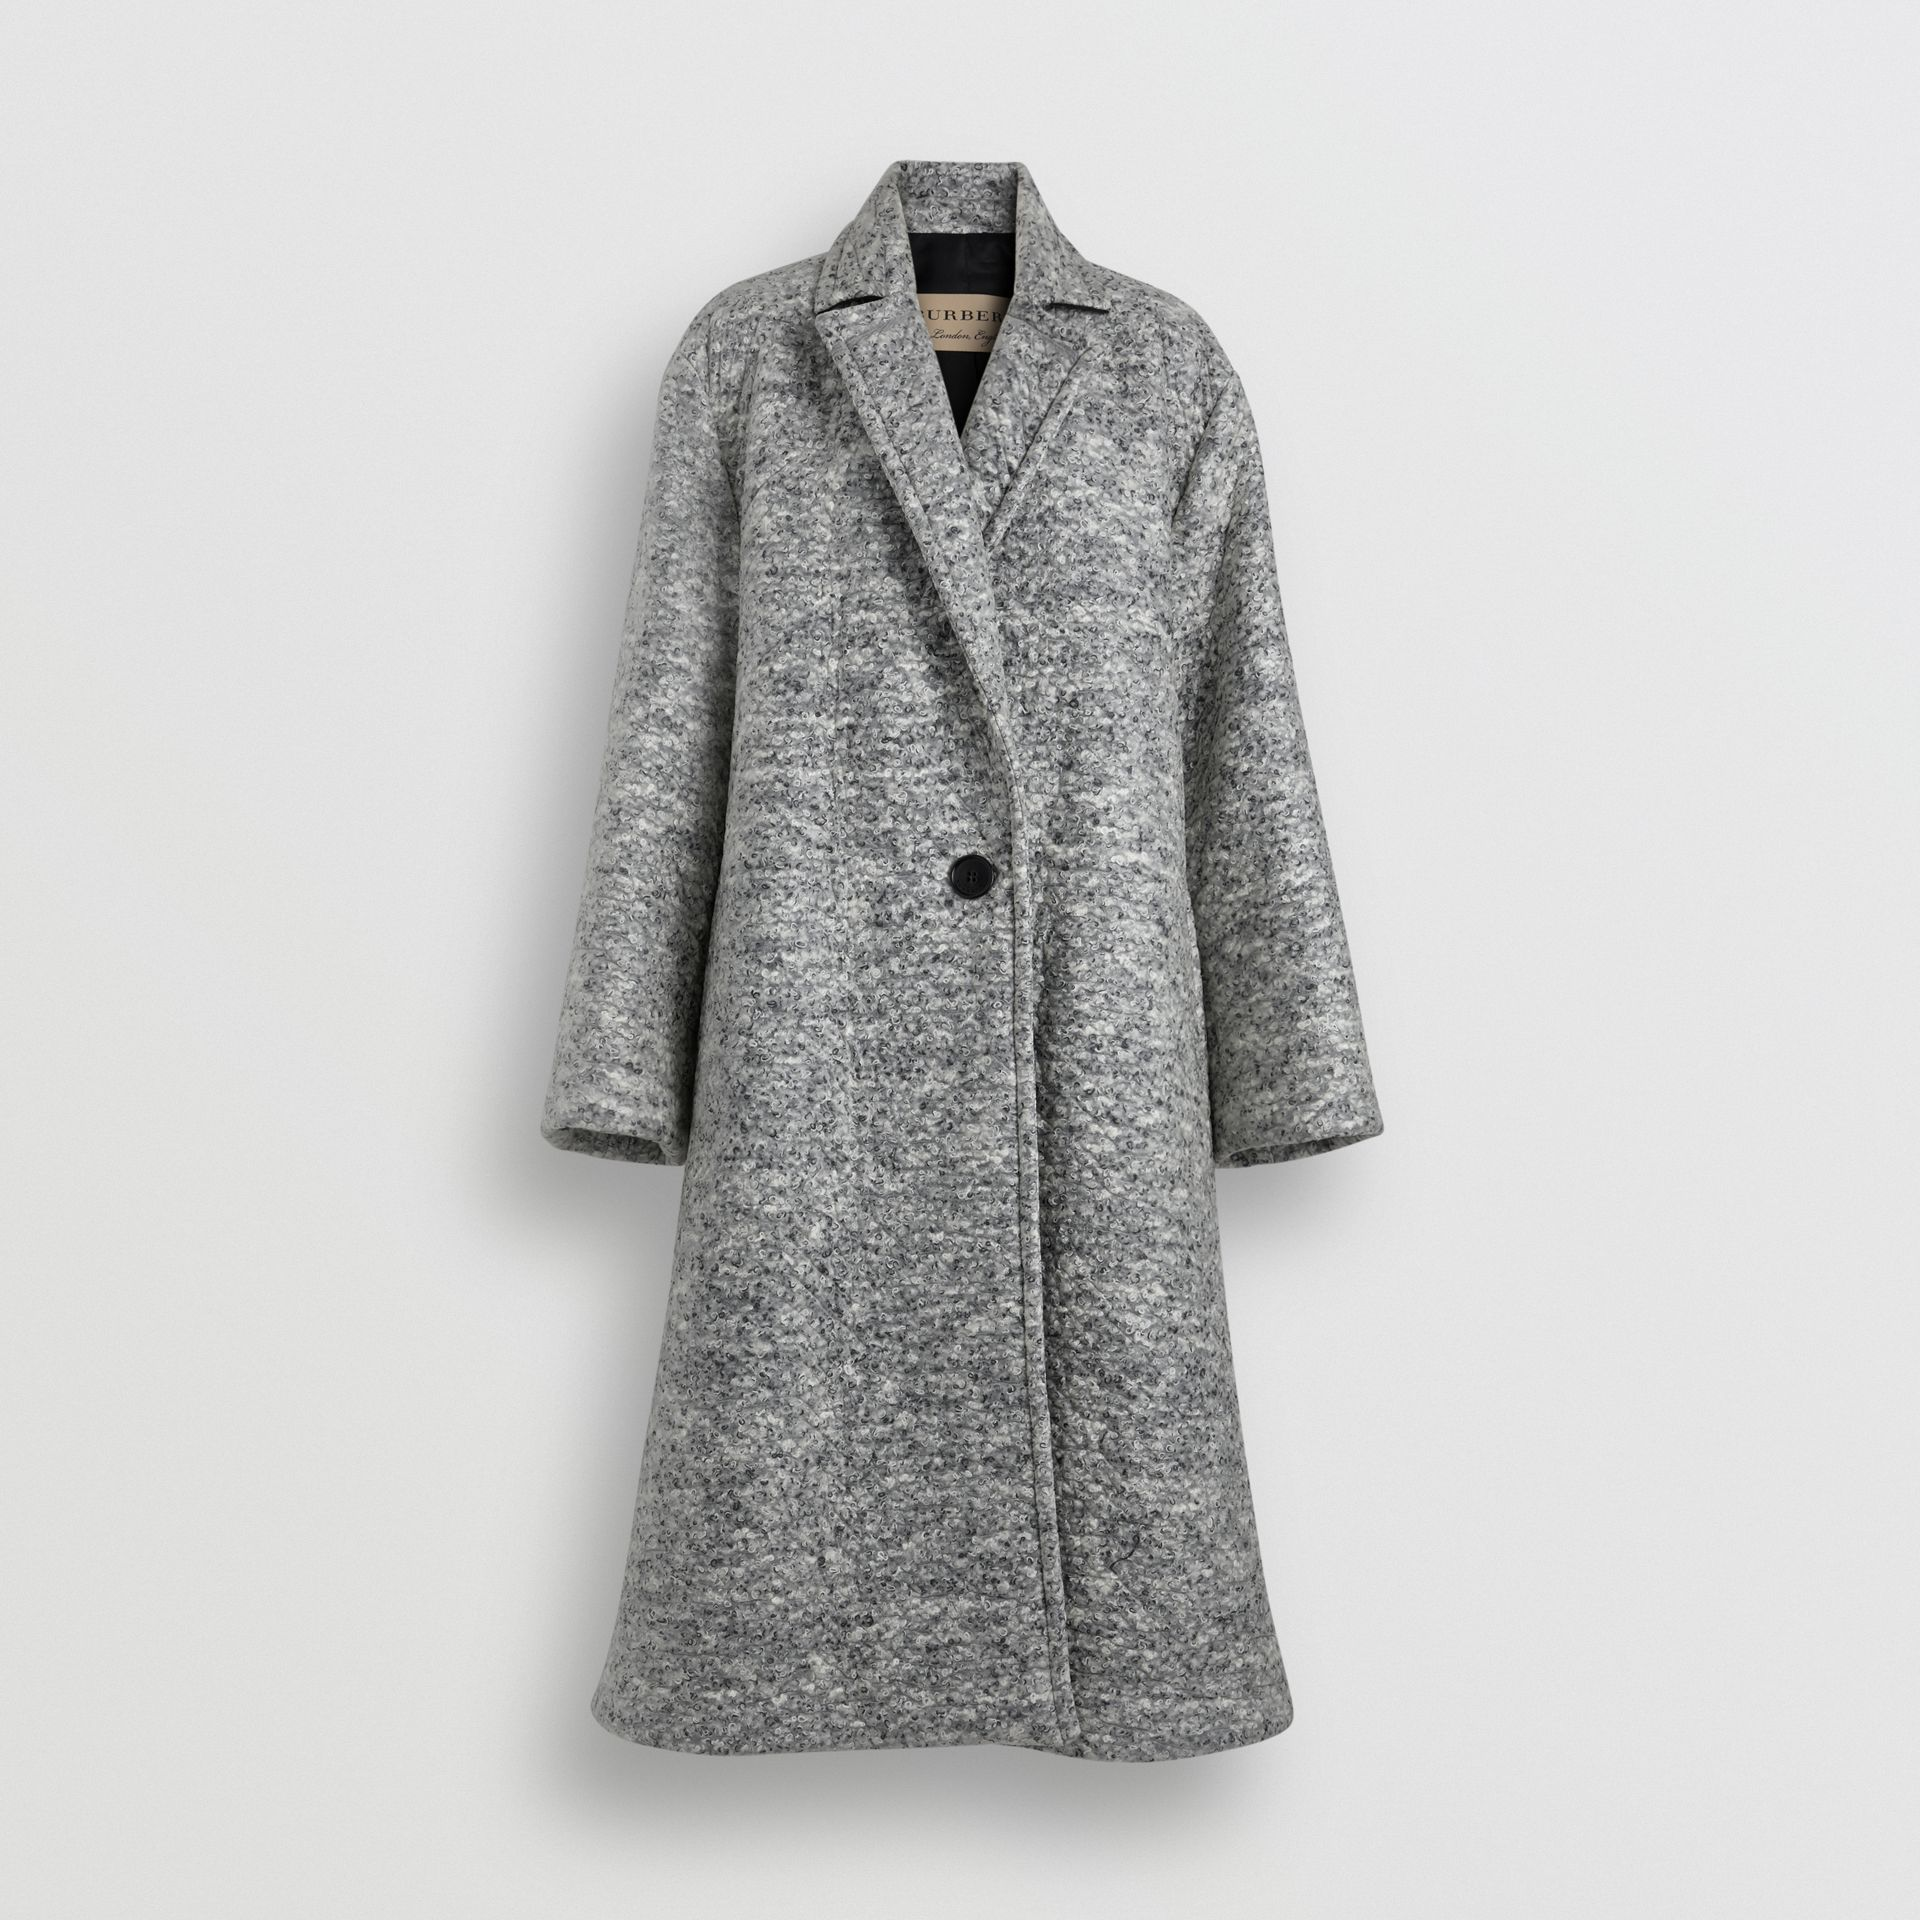 Laminated Cashmere Wool Blend Oversized Coat in Grey Melange - Women | Burberry - gallery image 3